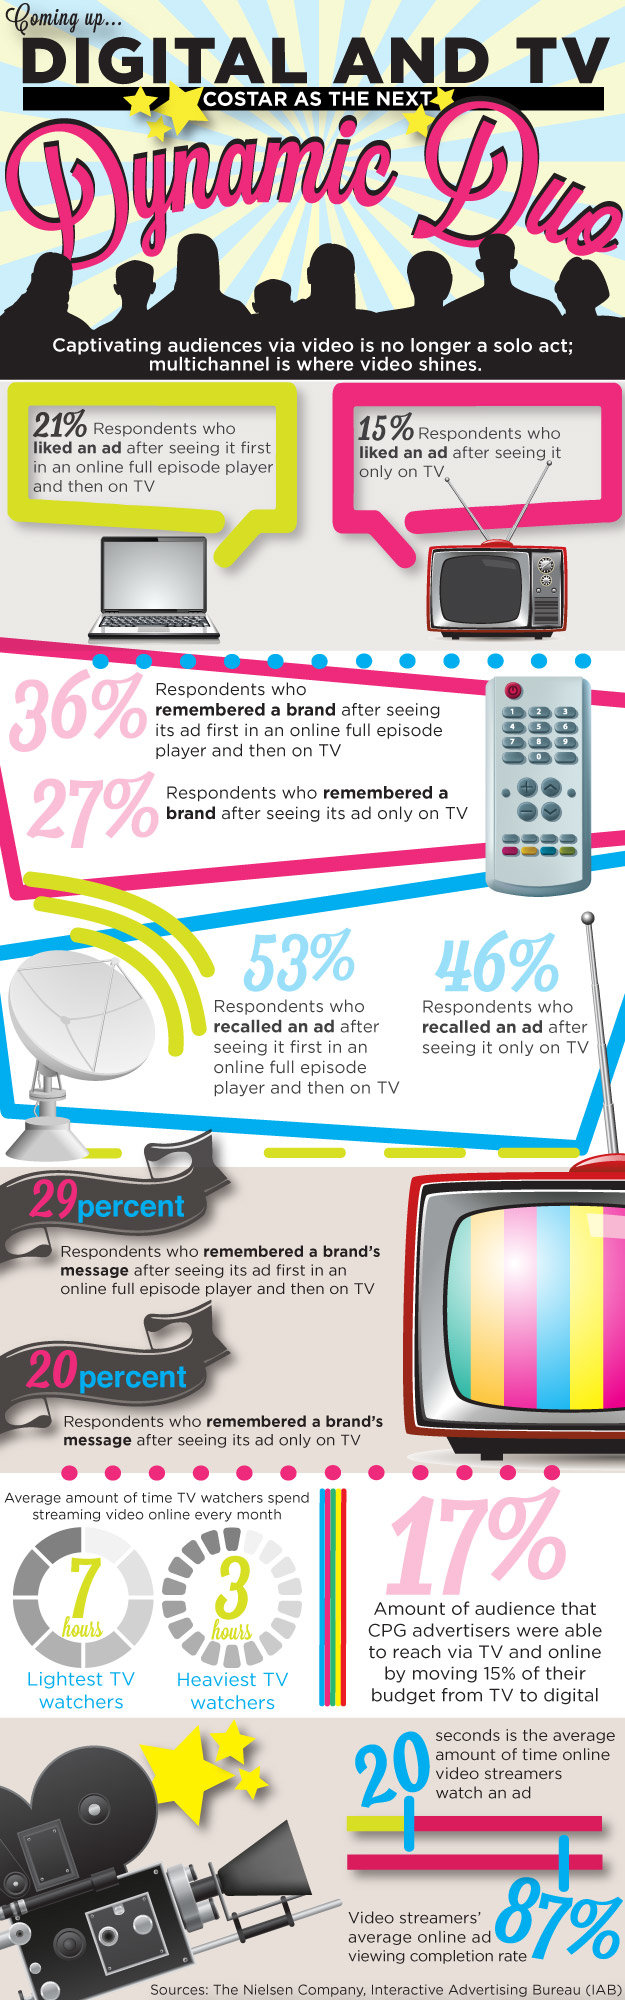 Digital and TV #infographic